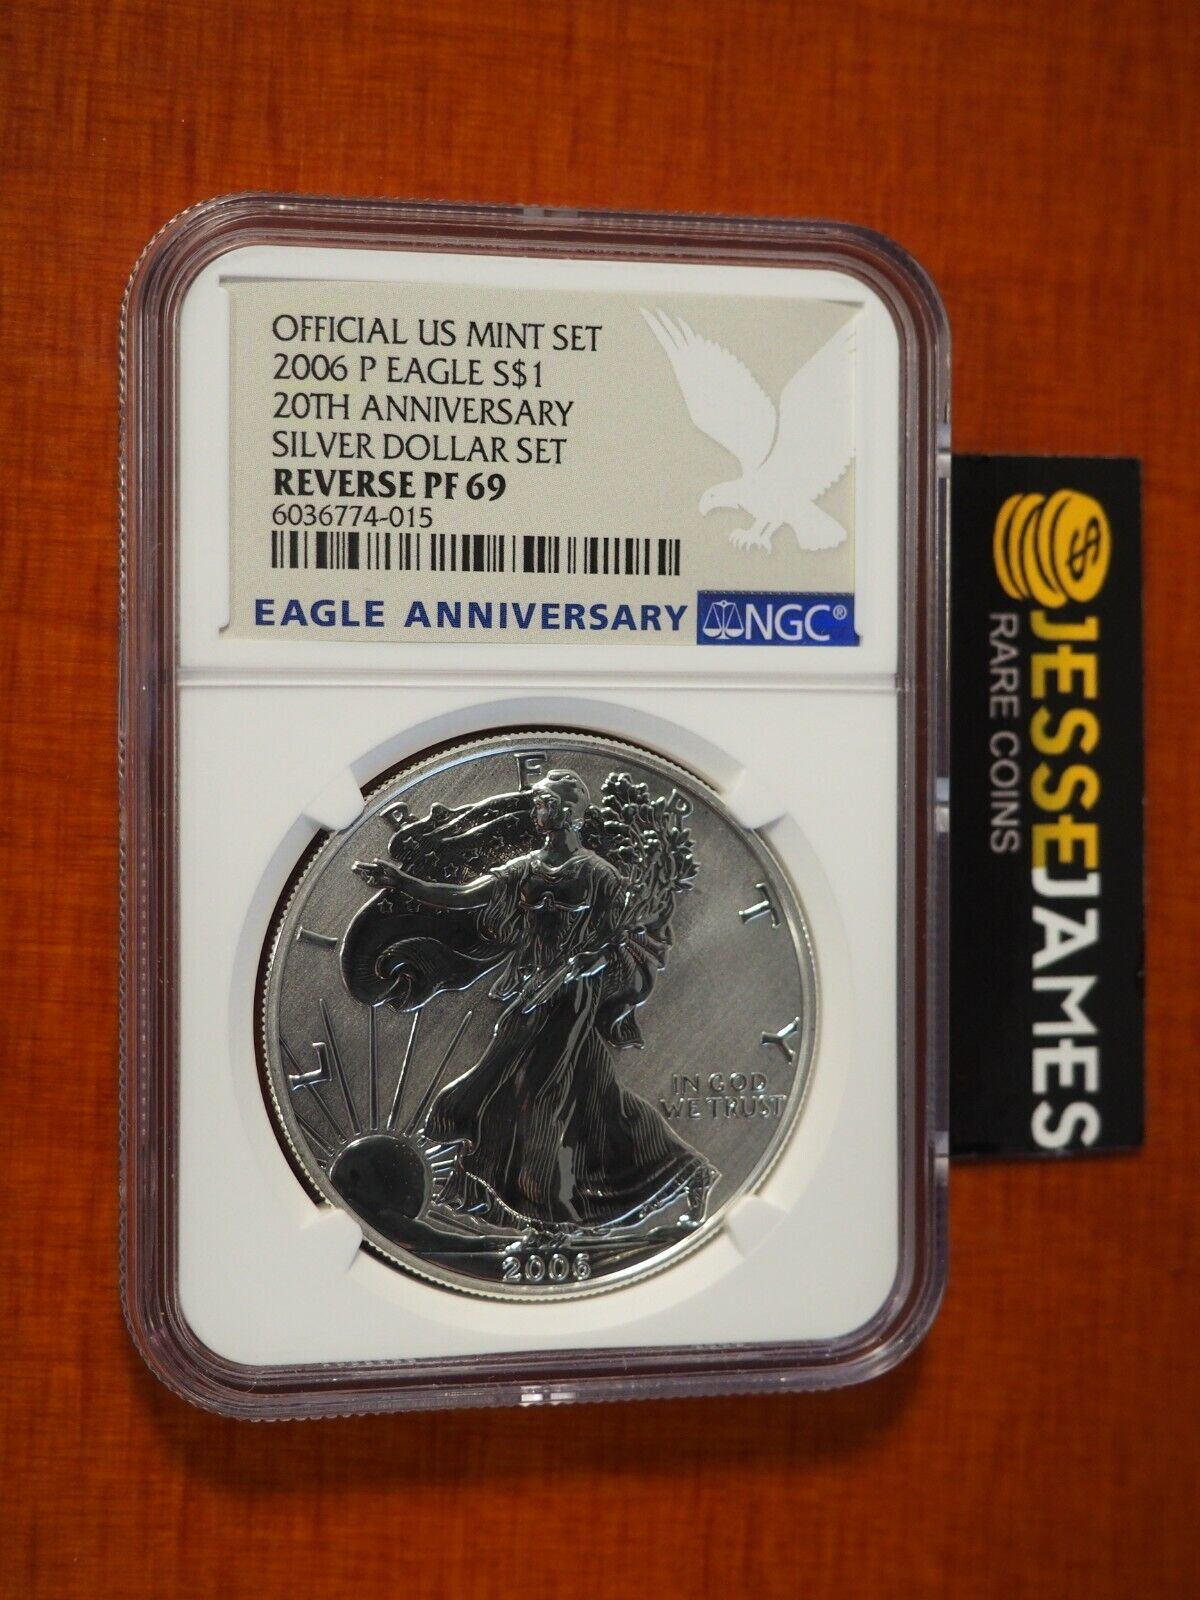 2006 P REVERSE PROOF SILVER EAGLE NGC PF69 FROM 20TH ANNIVERSARY SET BLUE LABEL - $119.00